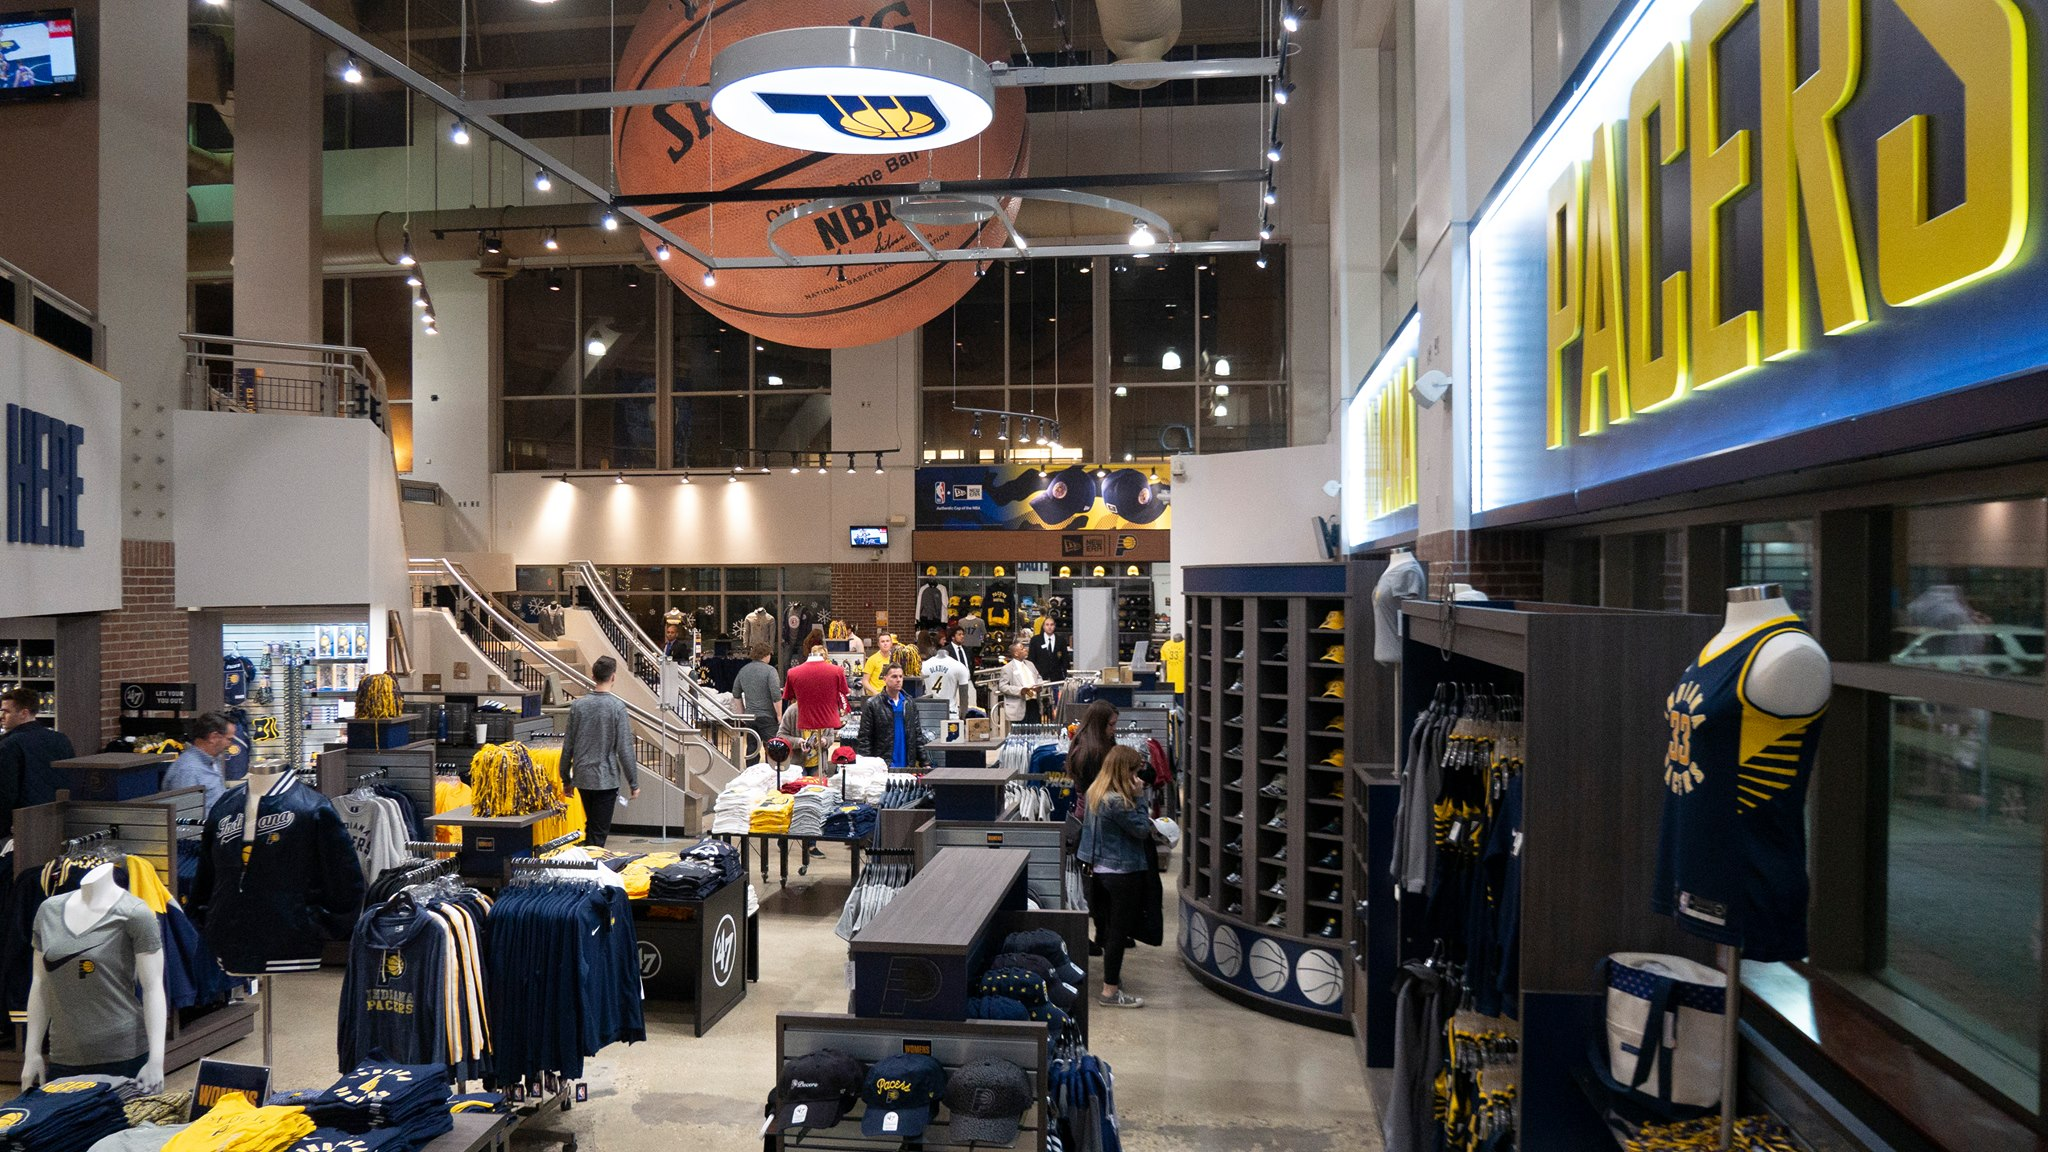 Bankers Life Fieldhouse Team Store